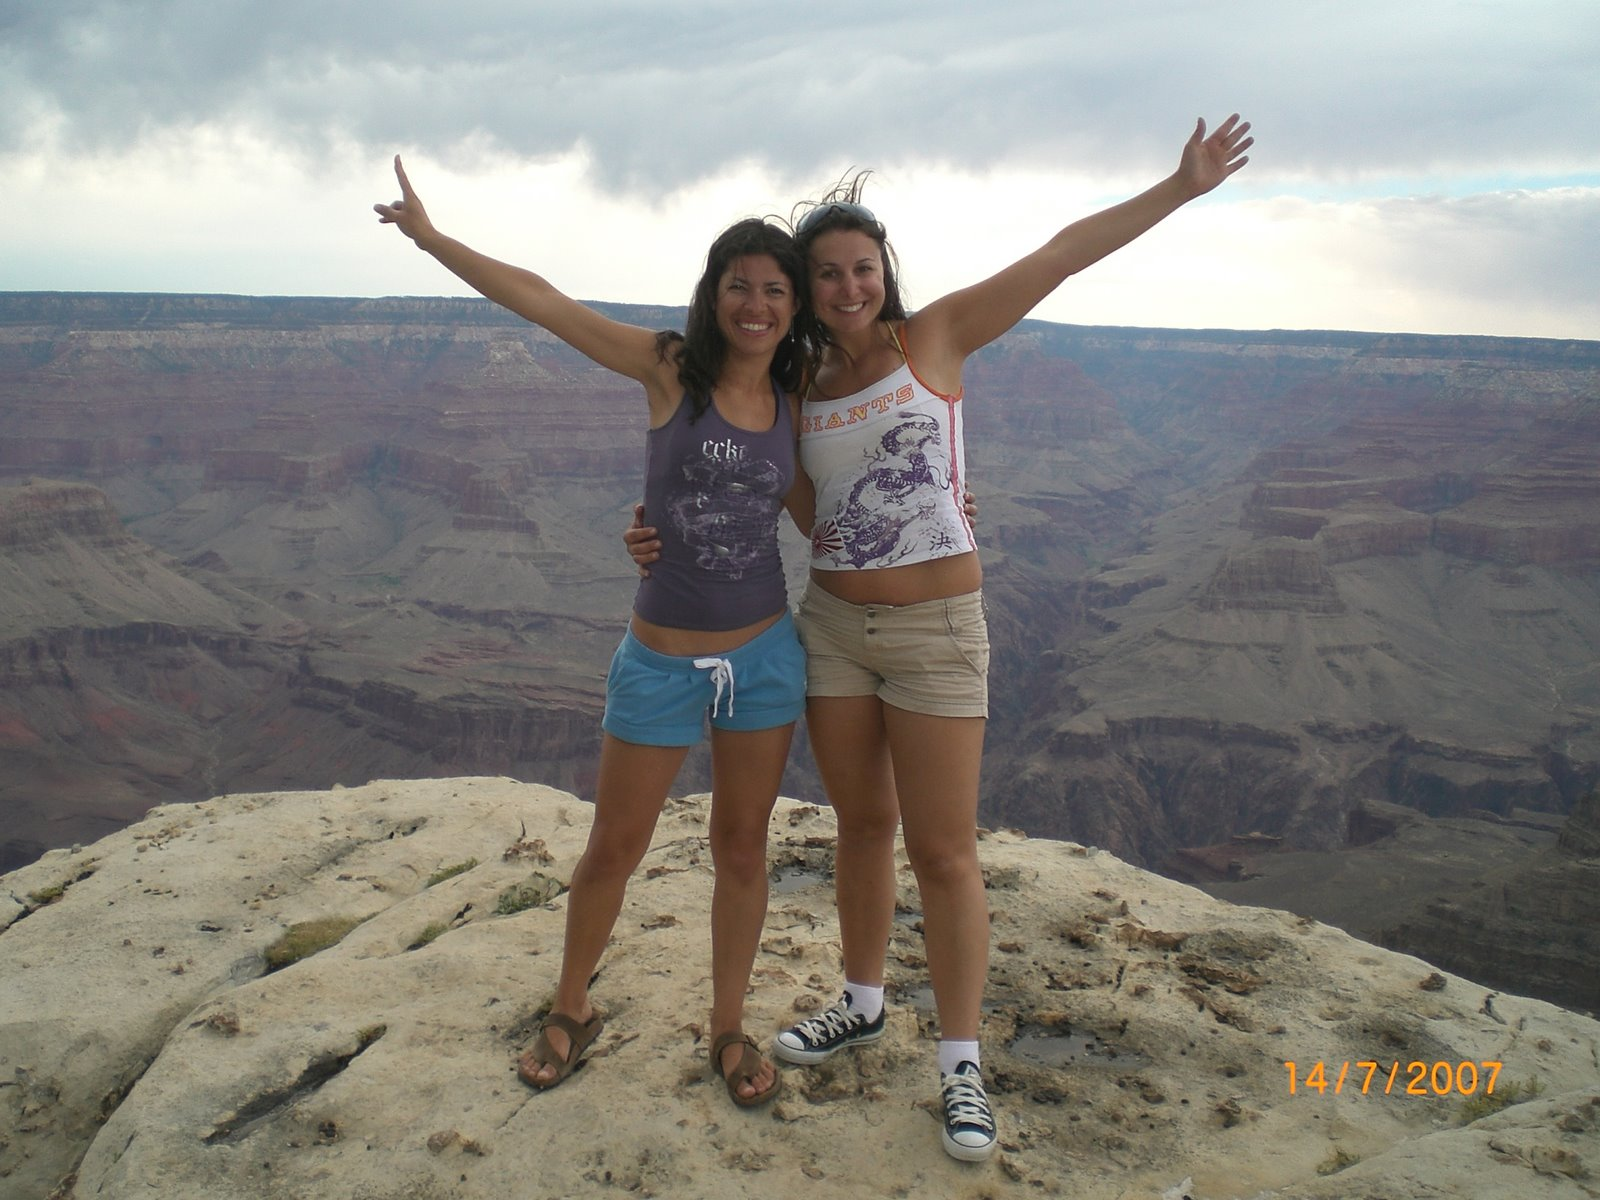 [CIMG2890_GRAND_CANYON]